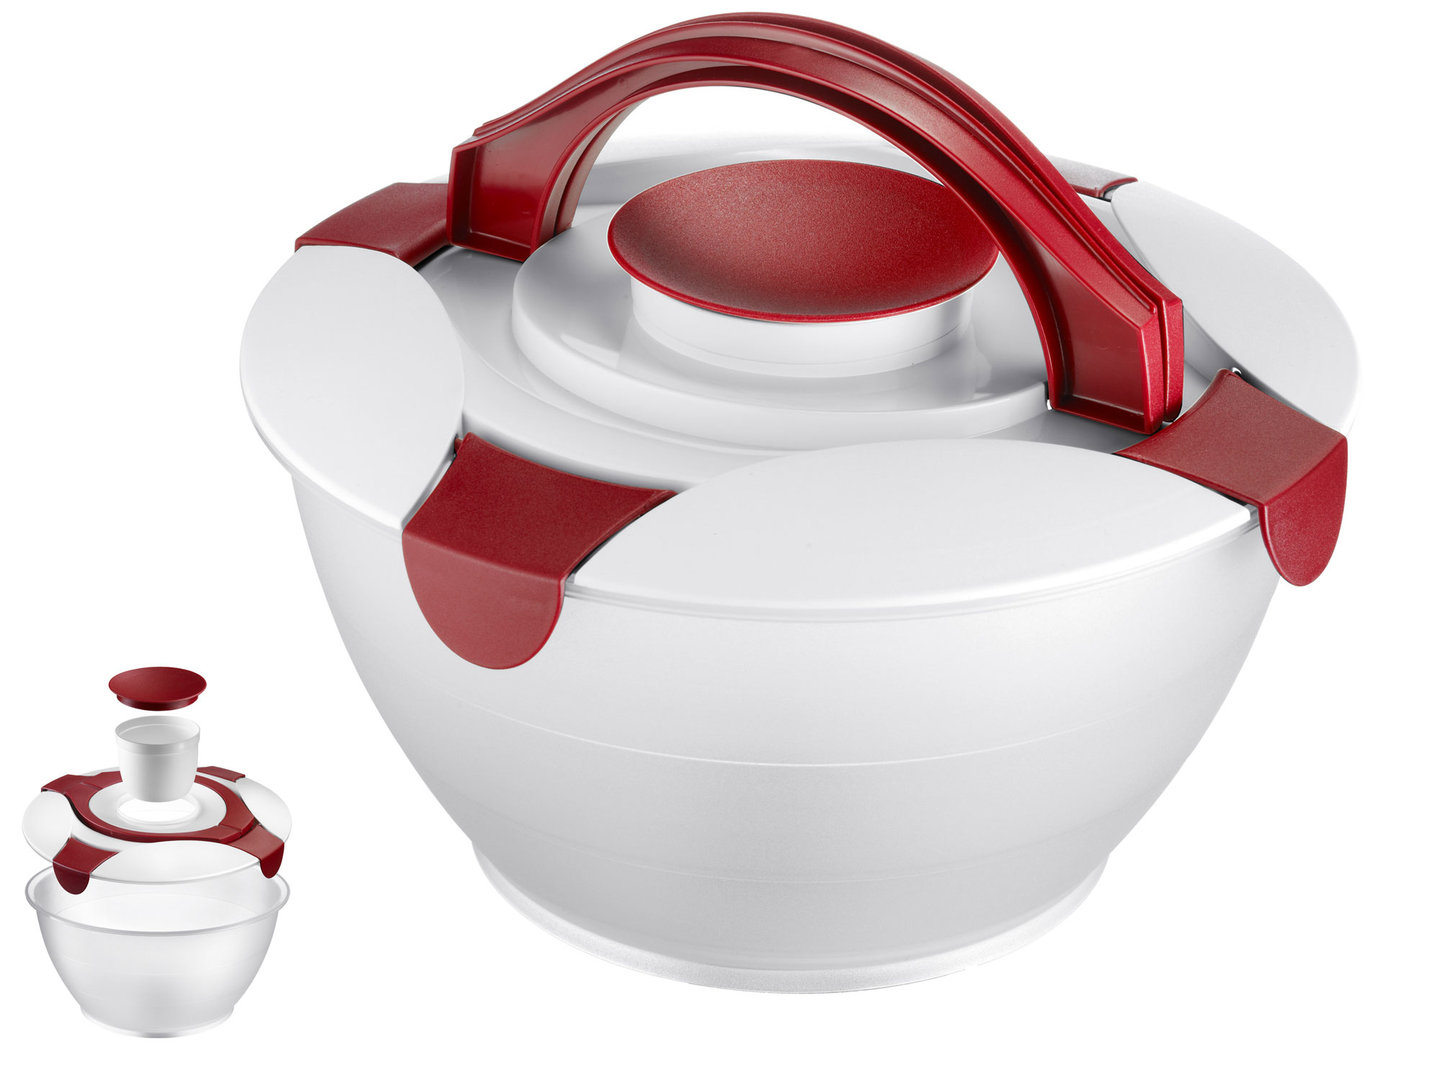 WESTMARK salad butler 6,5 l take-along salad bowl with lid RED